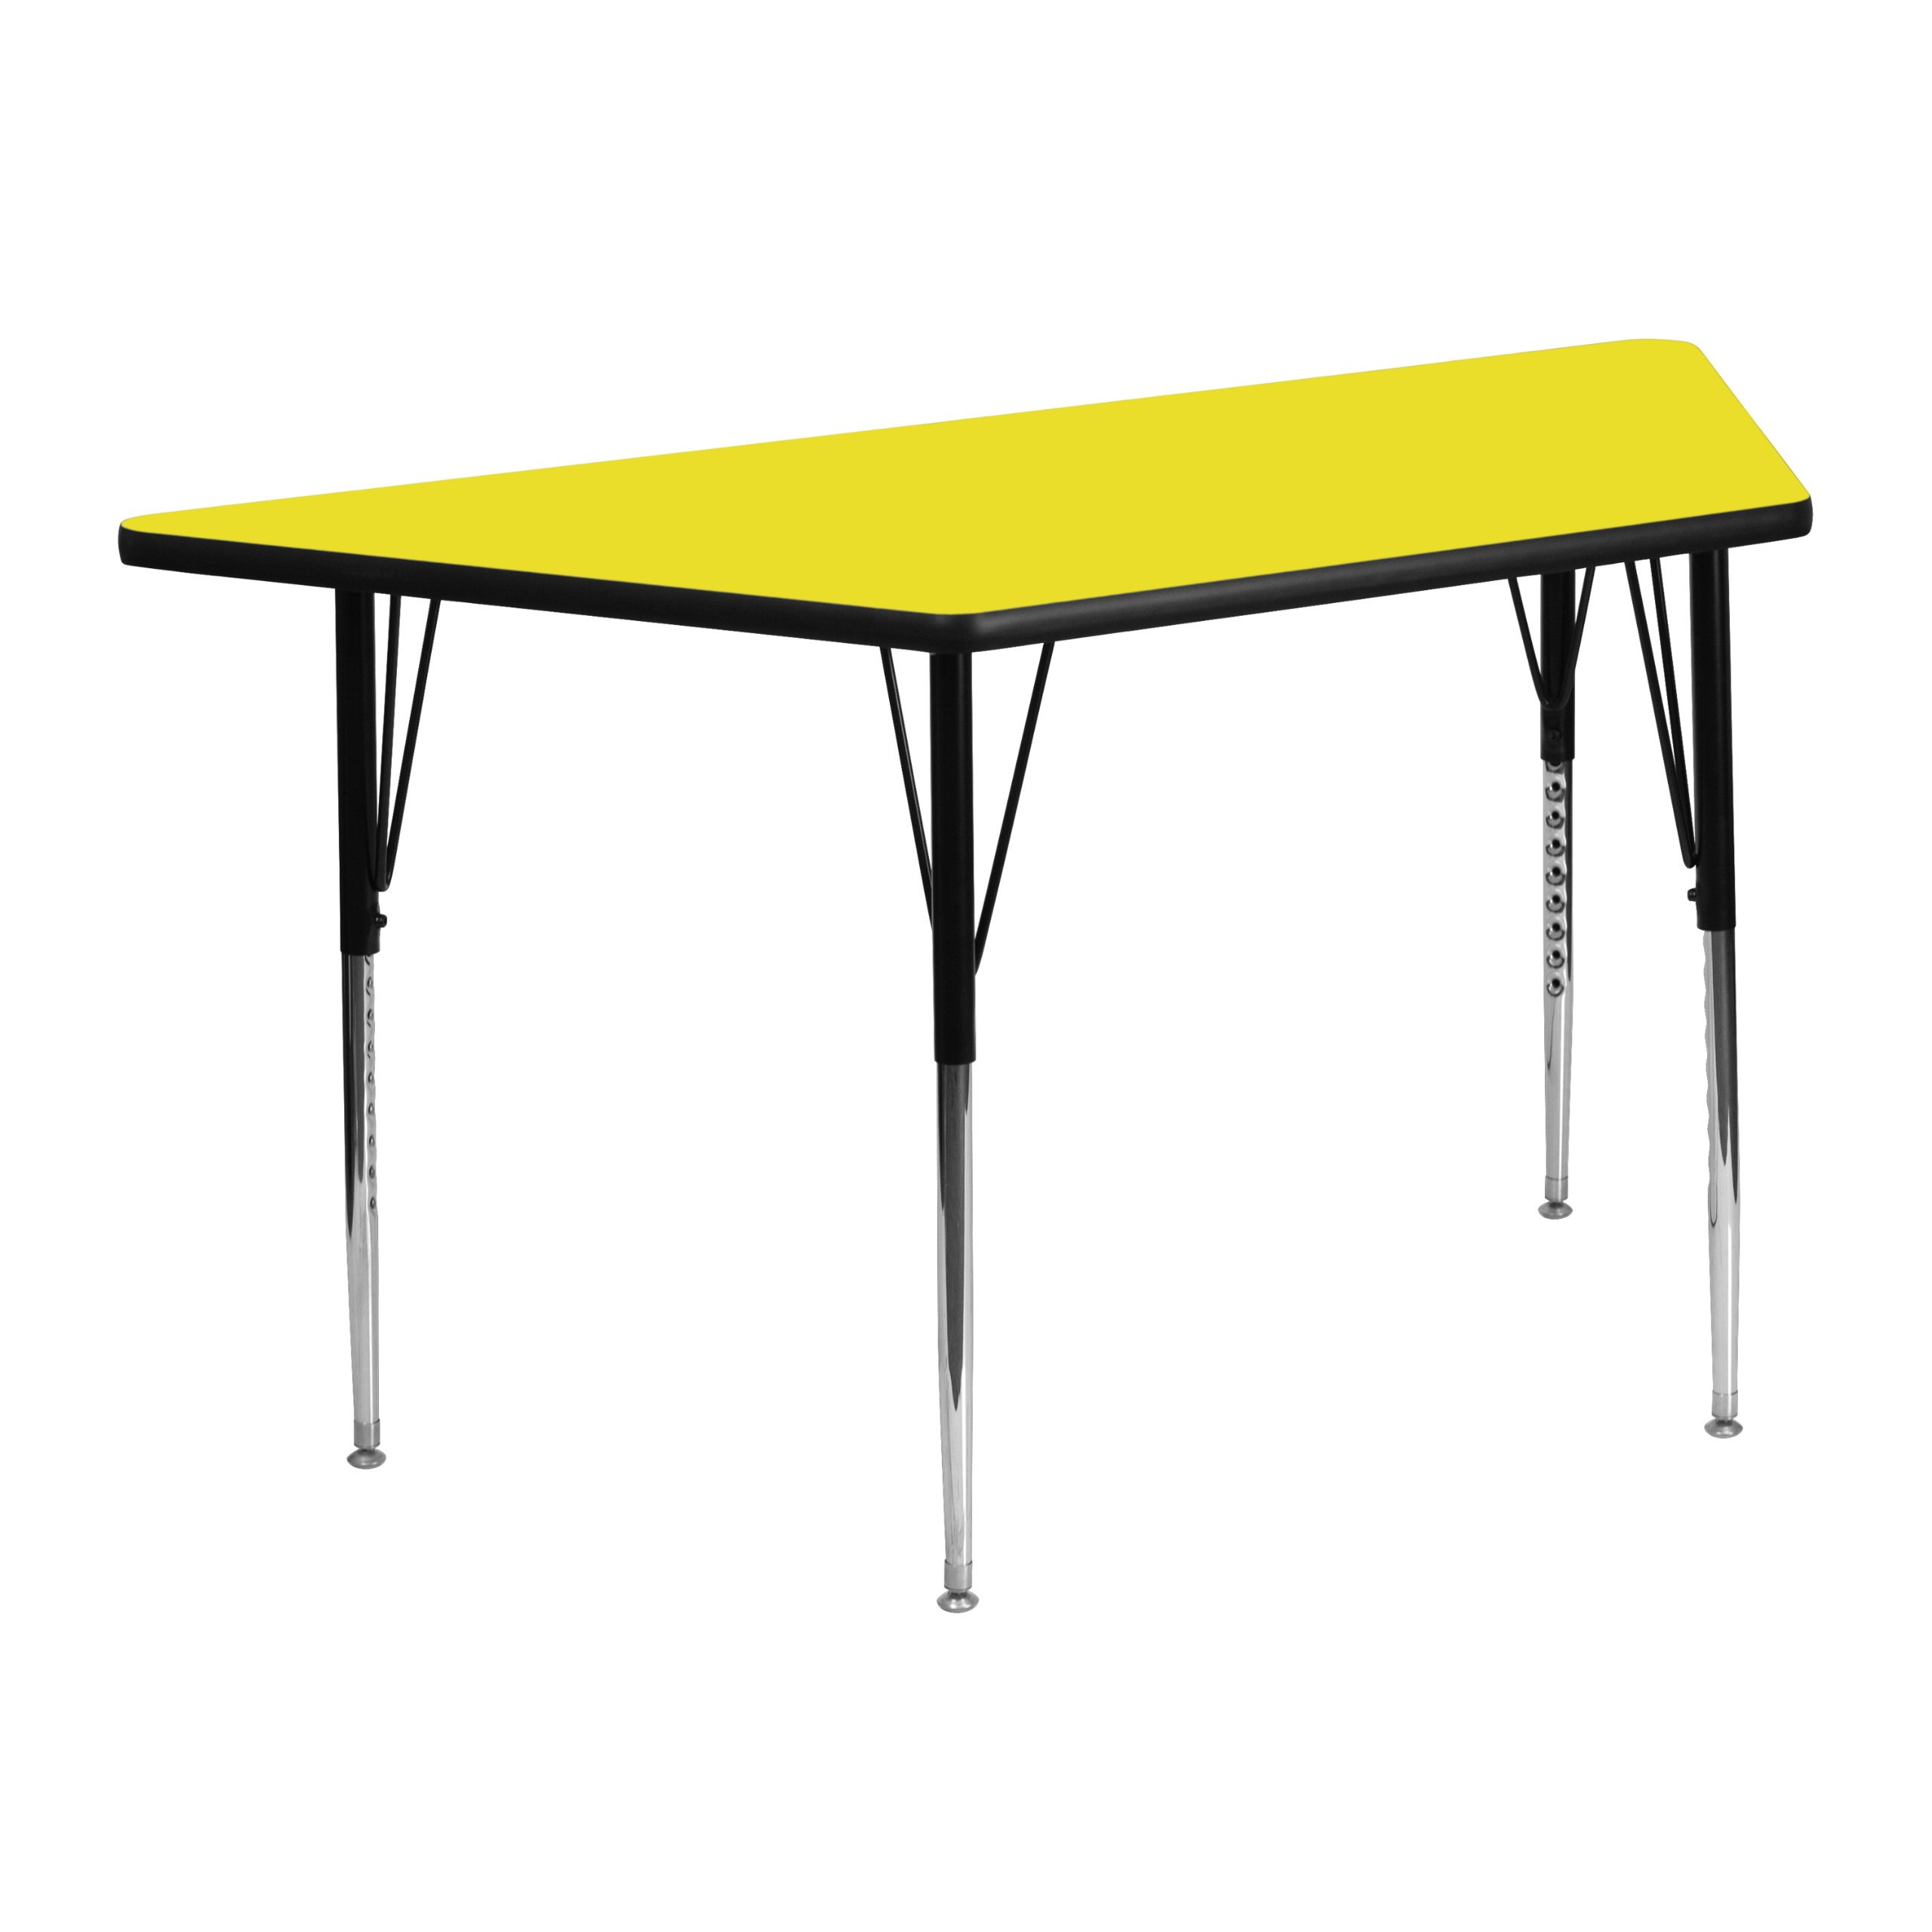 Flash Furniture 25.5''W x 46.25''L Trapezoid Yellow HP Laminate Activity Table - Standard Height Adjustable Legs